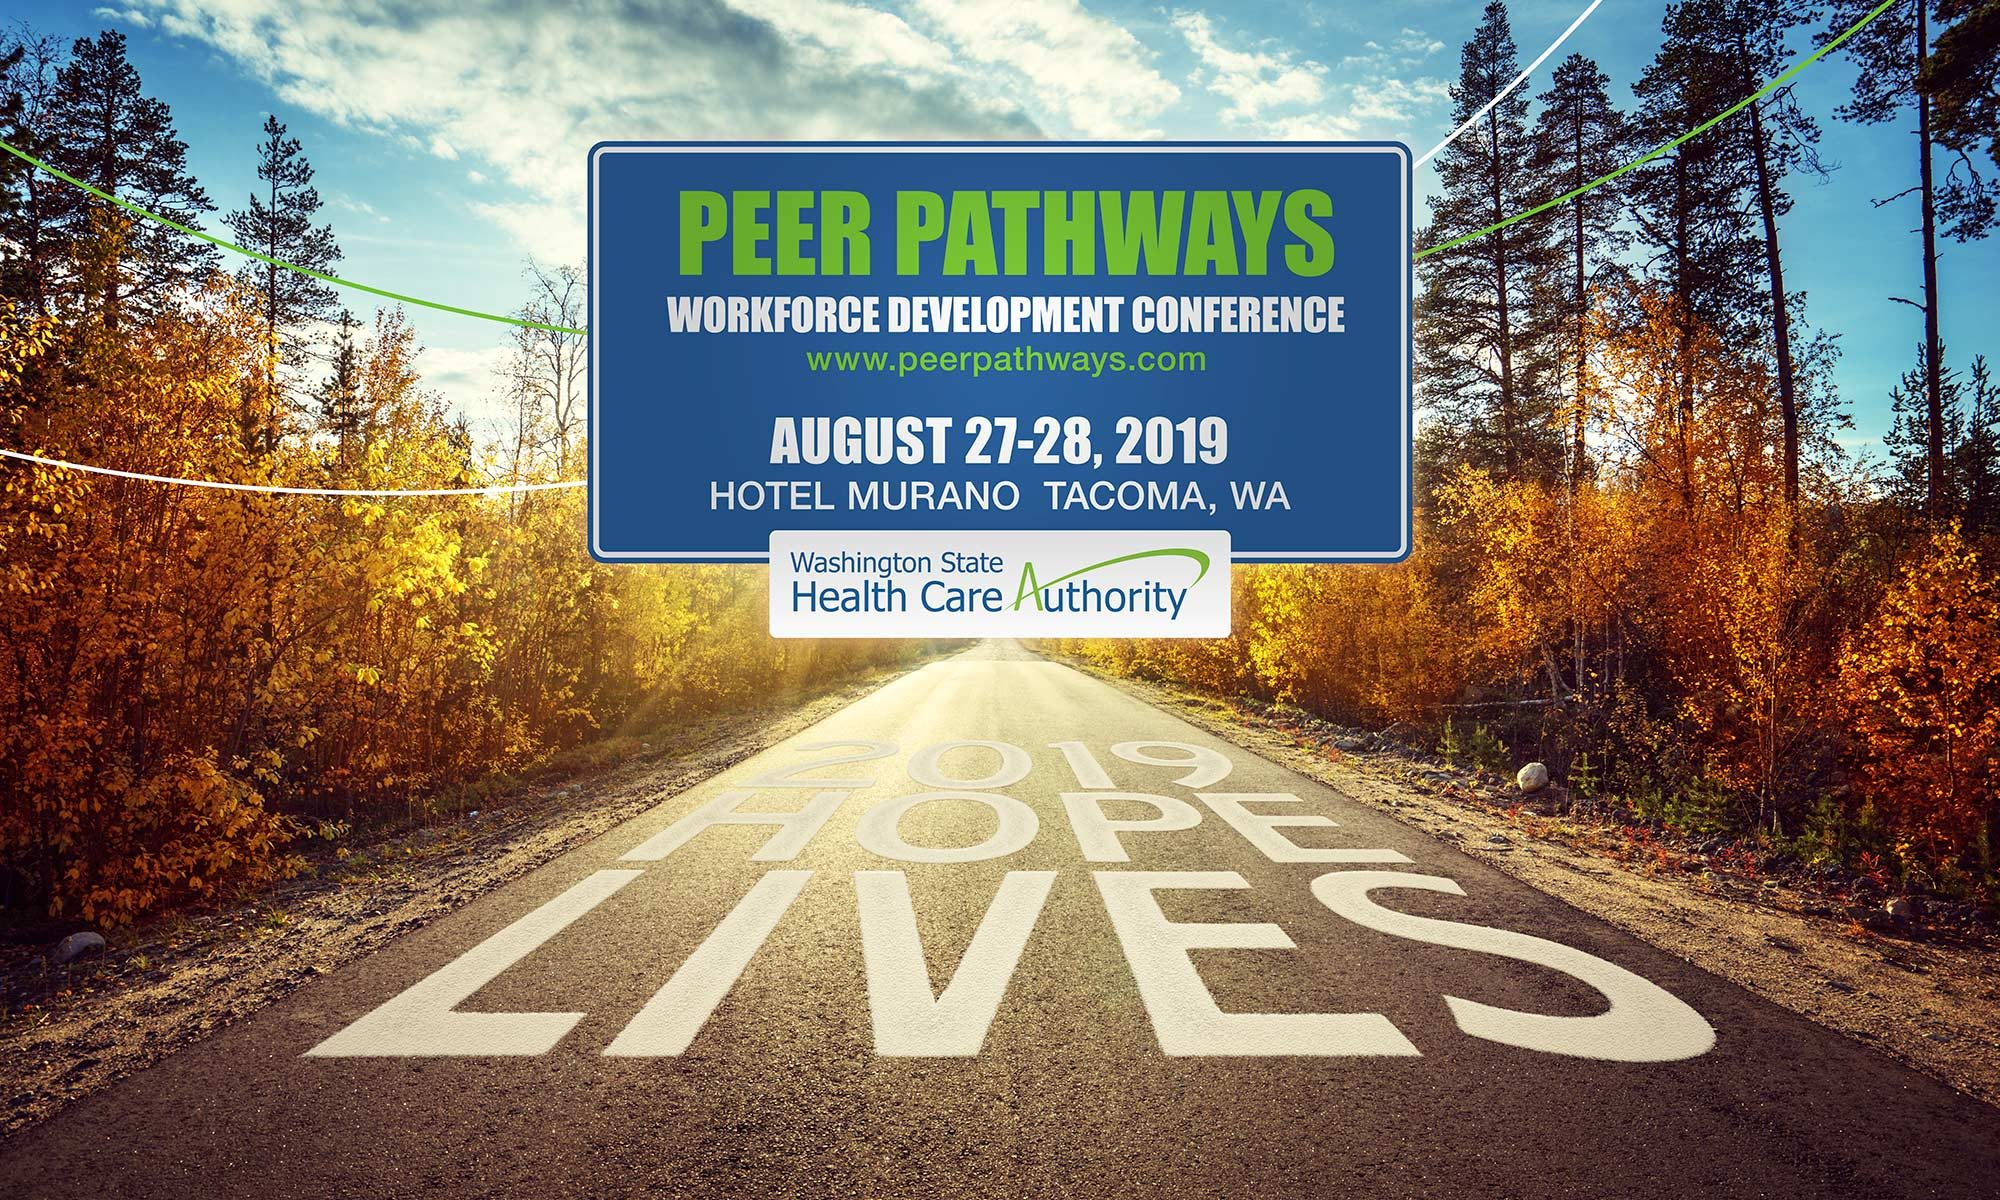 Peer Pathways